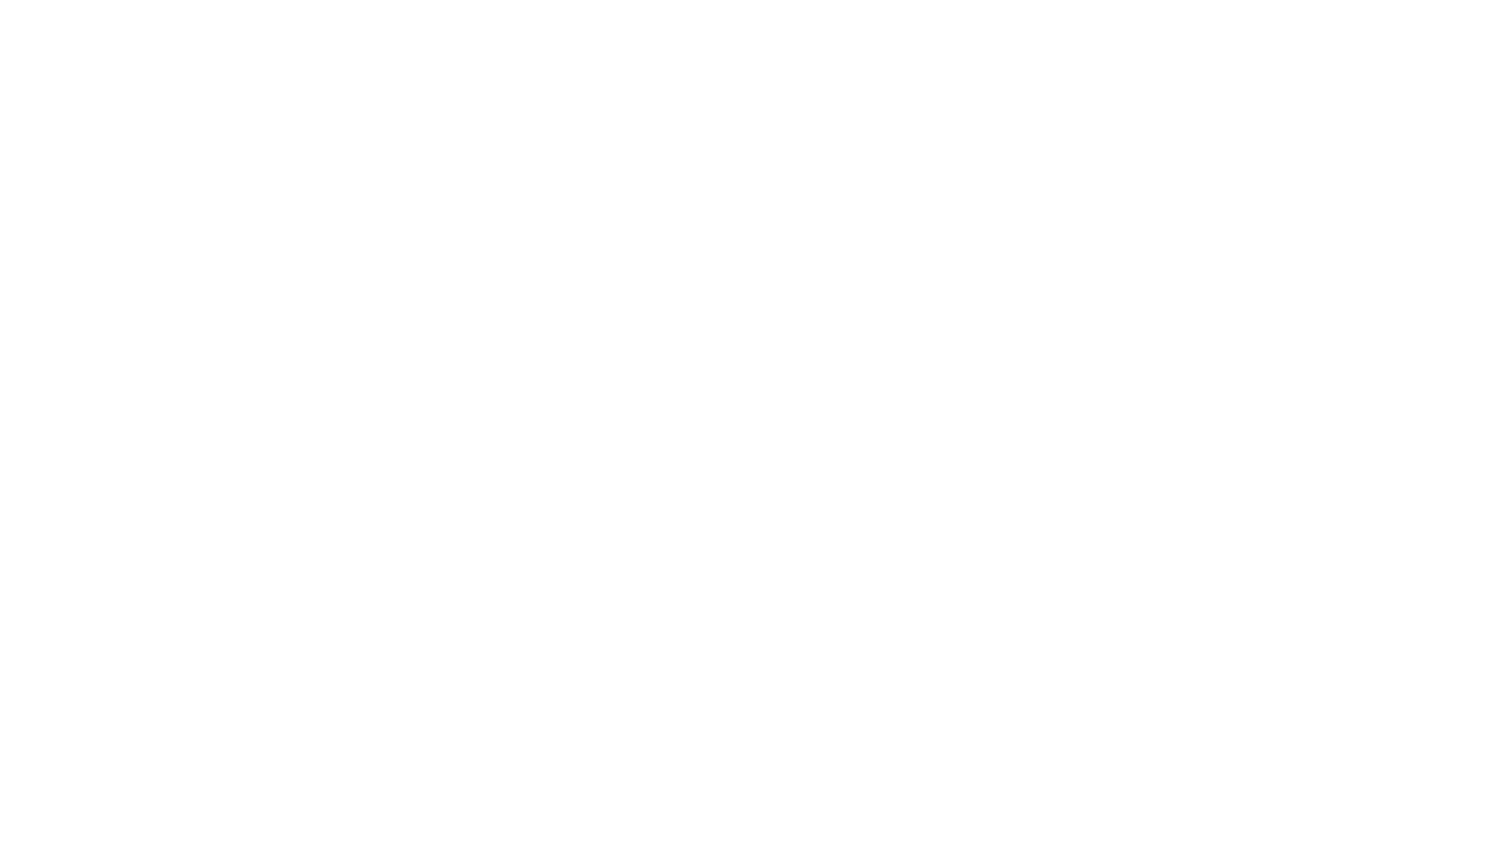 Buy Wagyu Beef Online | The Wagyu Shop